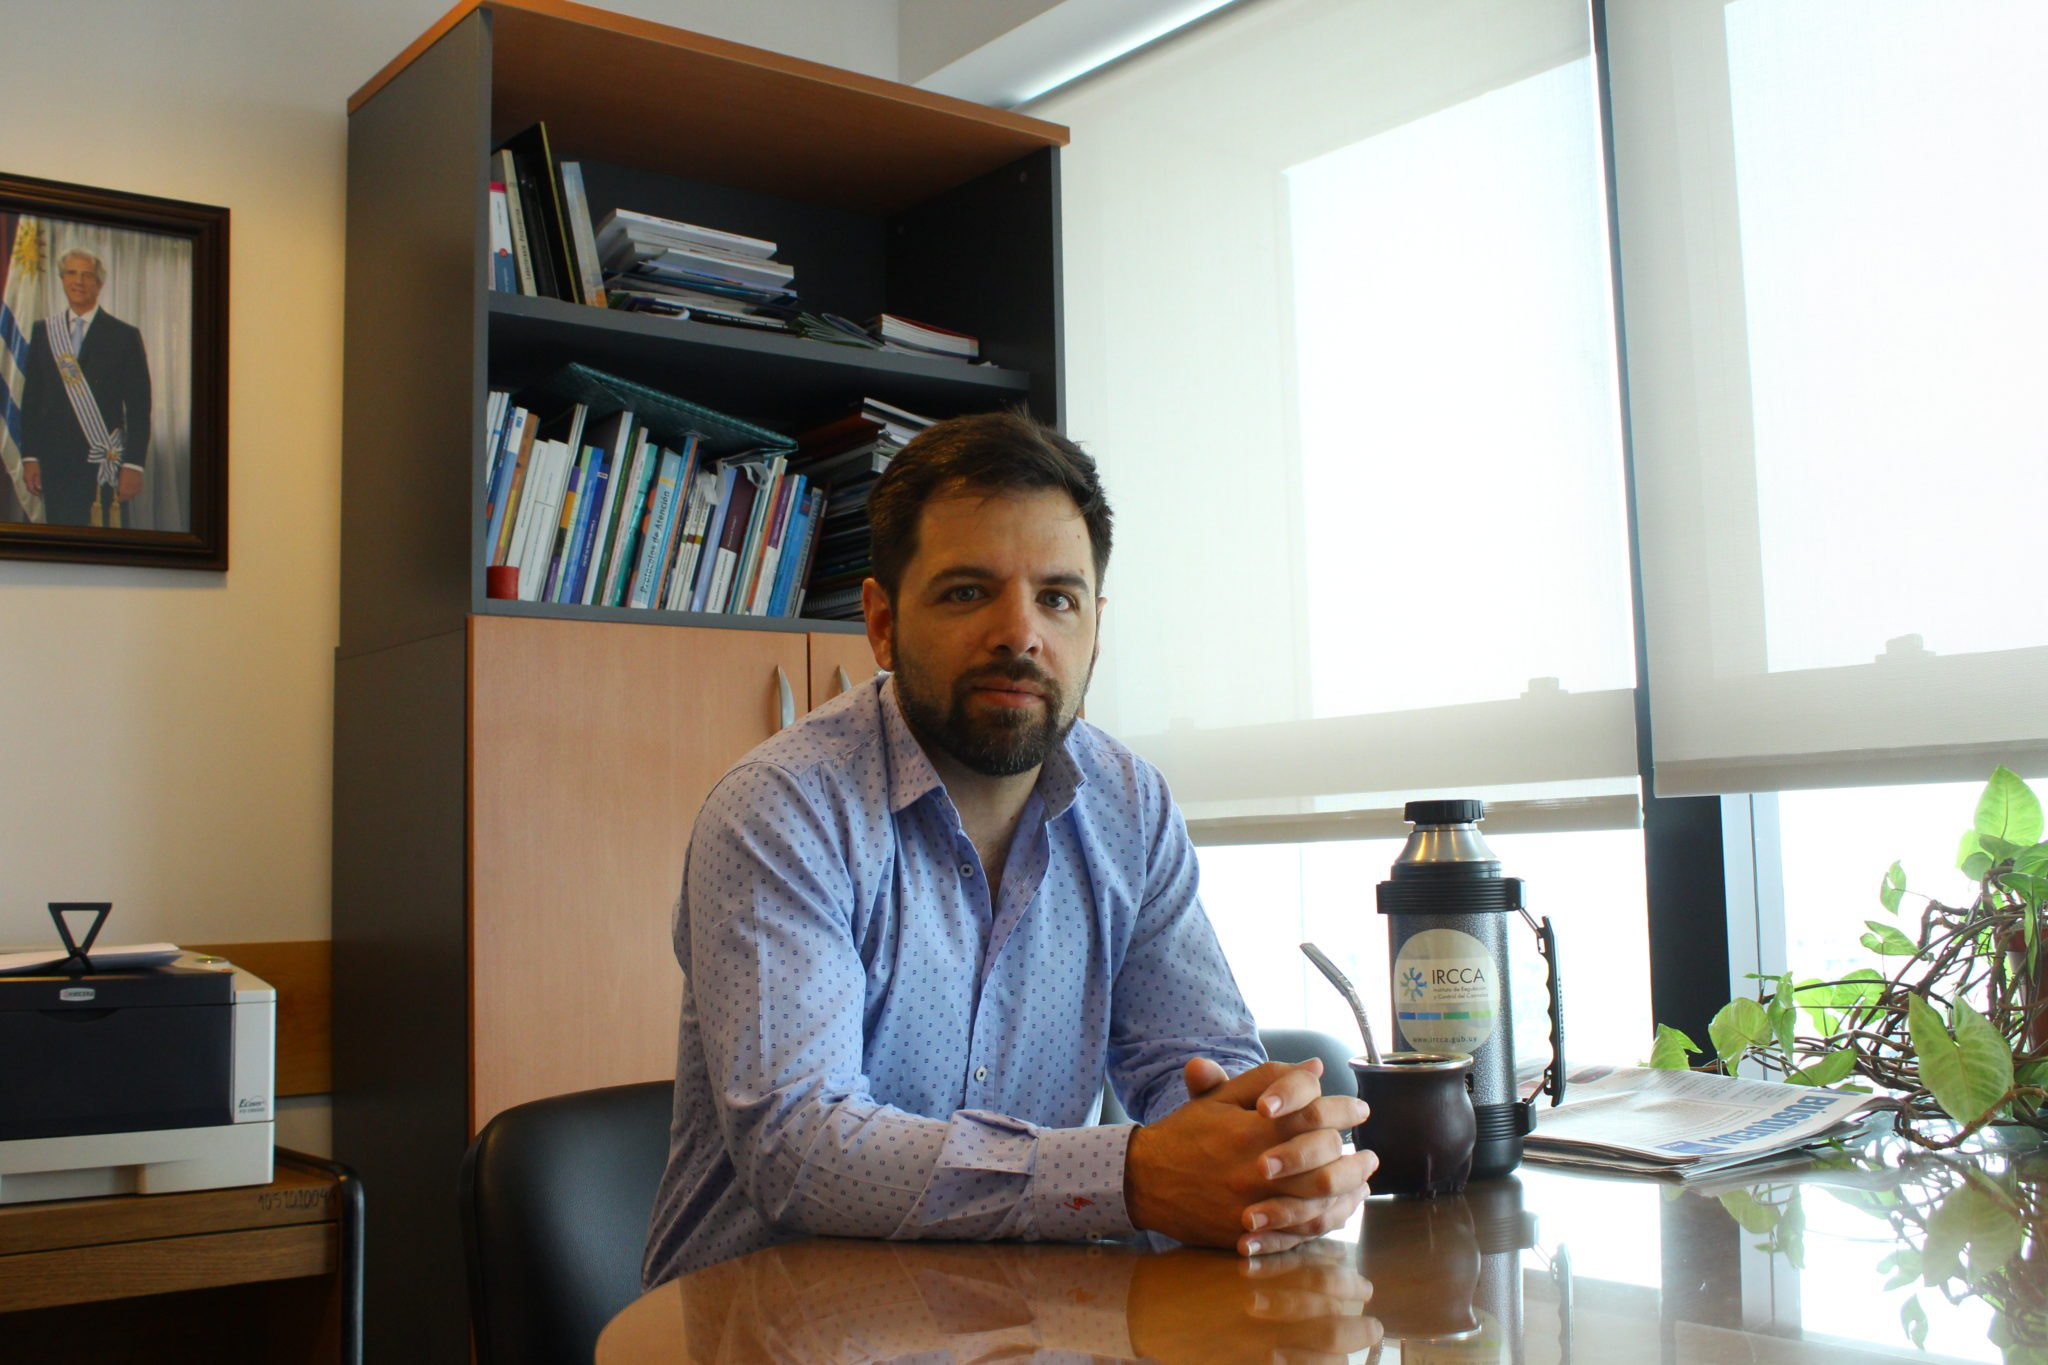 Diego Olivera, President of IRCCA, in his office with a thermos and mug of mate. IRCCA regulates cannabis in Uruguay, and Olivera anticipates a much greater diversity in hemp and cannabis products in 2019.